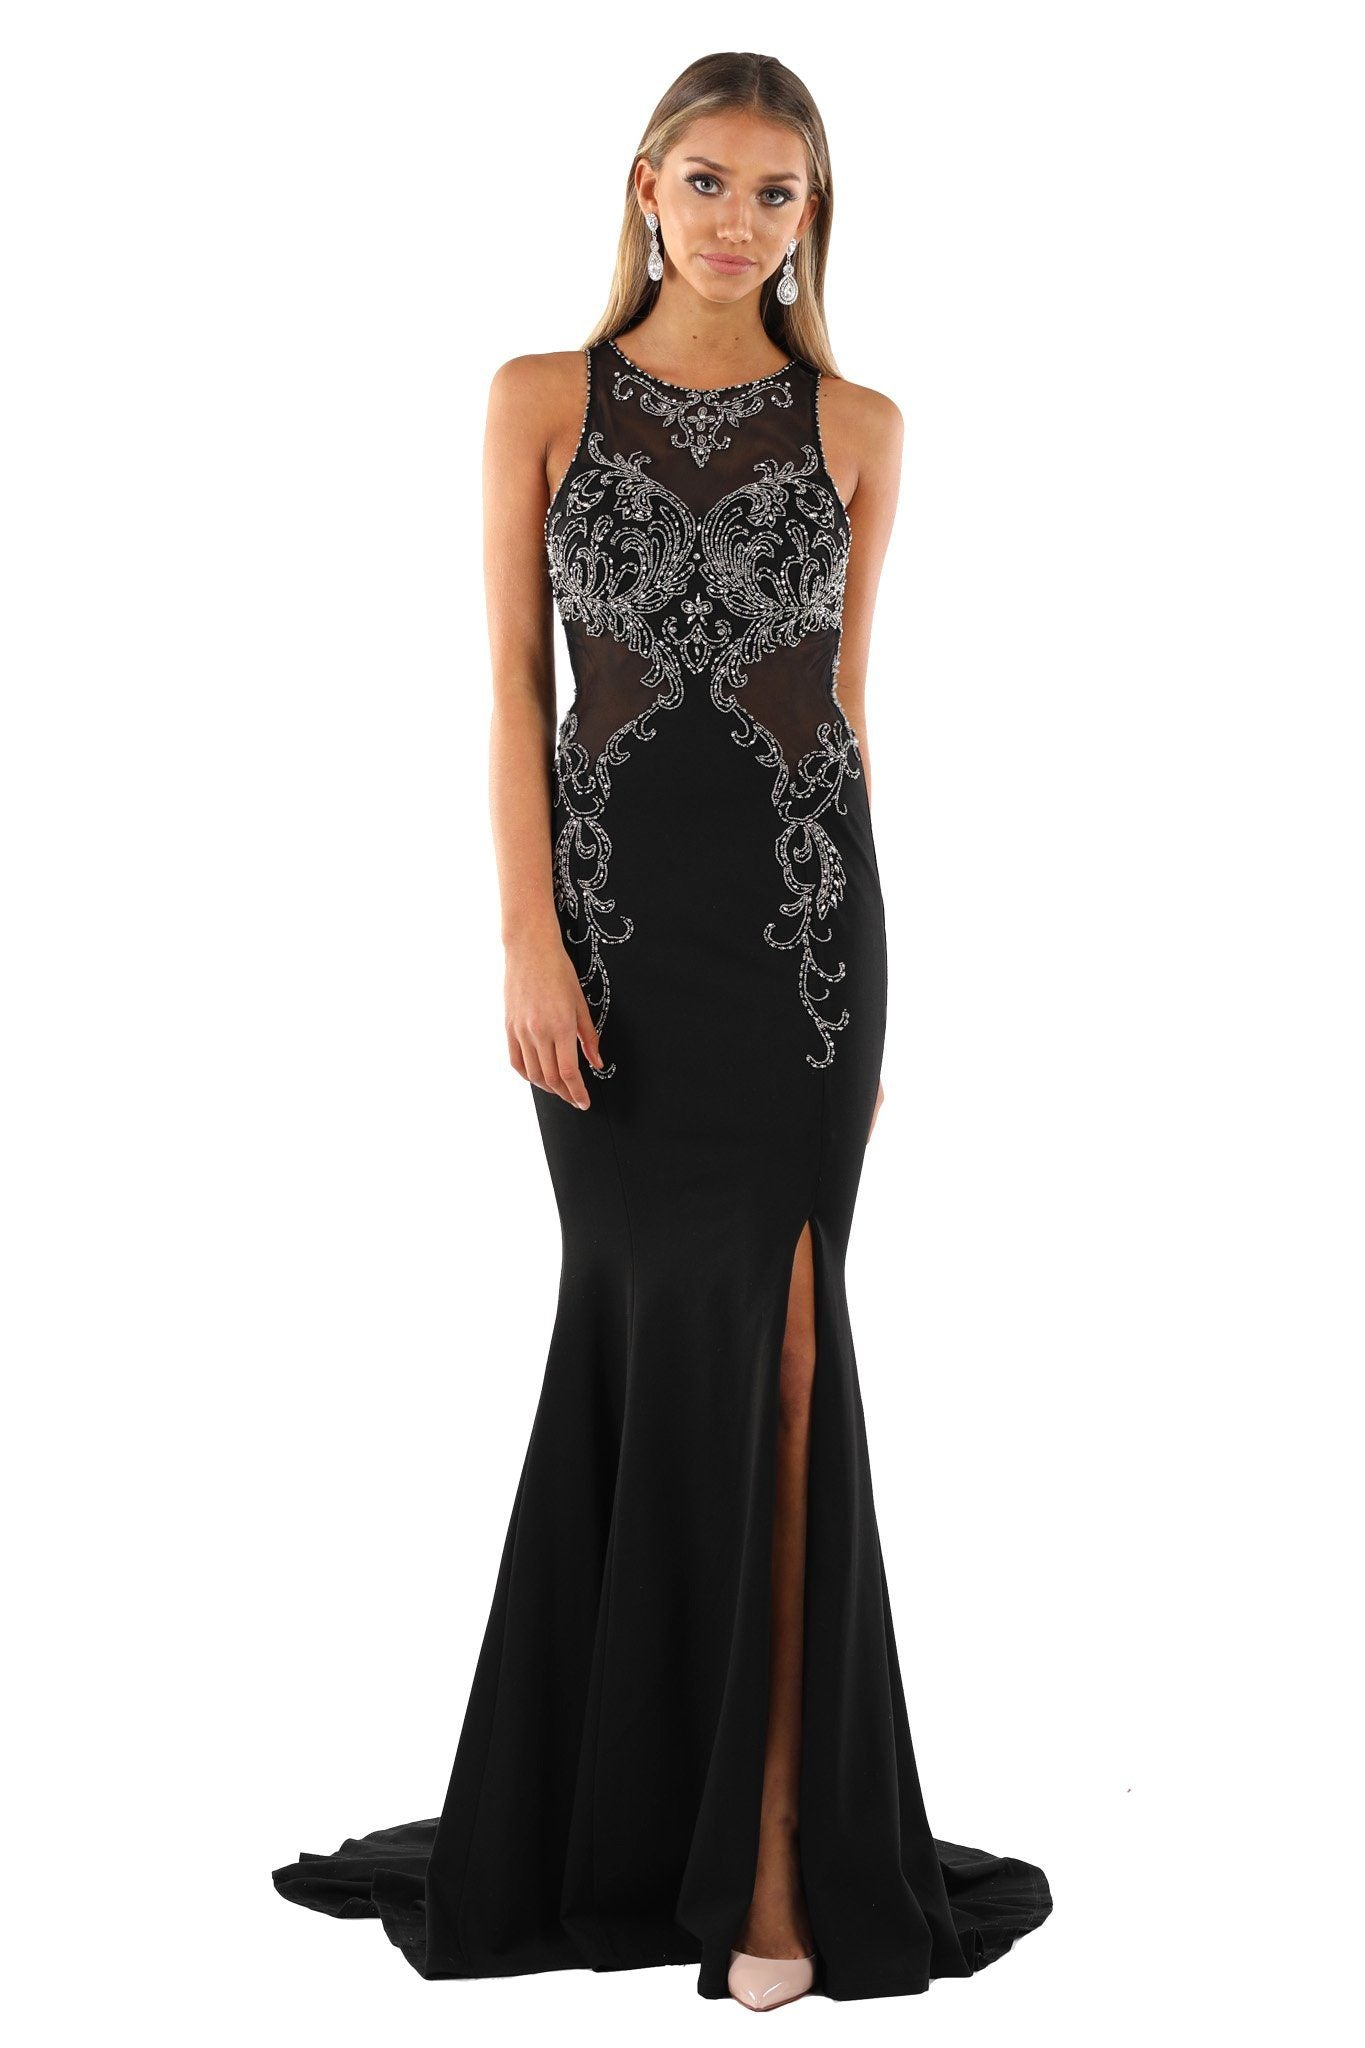 Black strapless sleeveless floor length fitted bodycon evening gown with metallic silver beading details, high slit, cut out open back, and long train